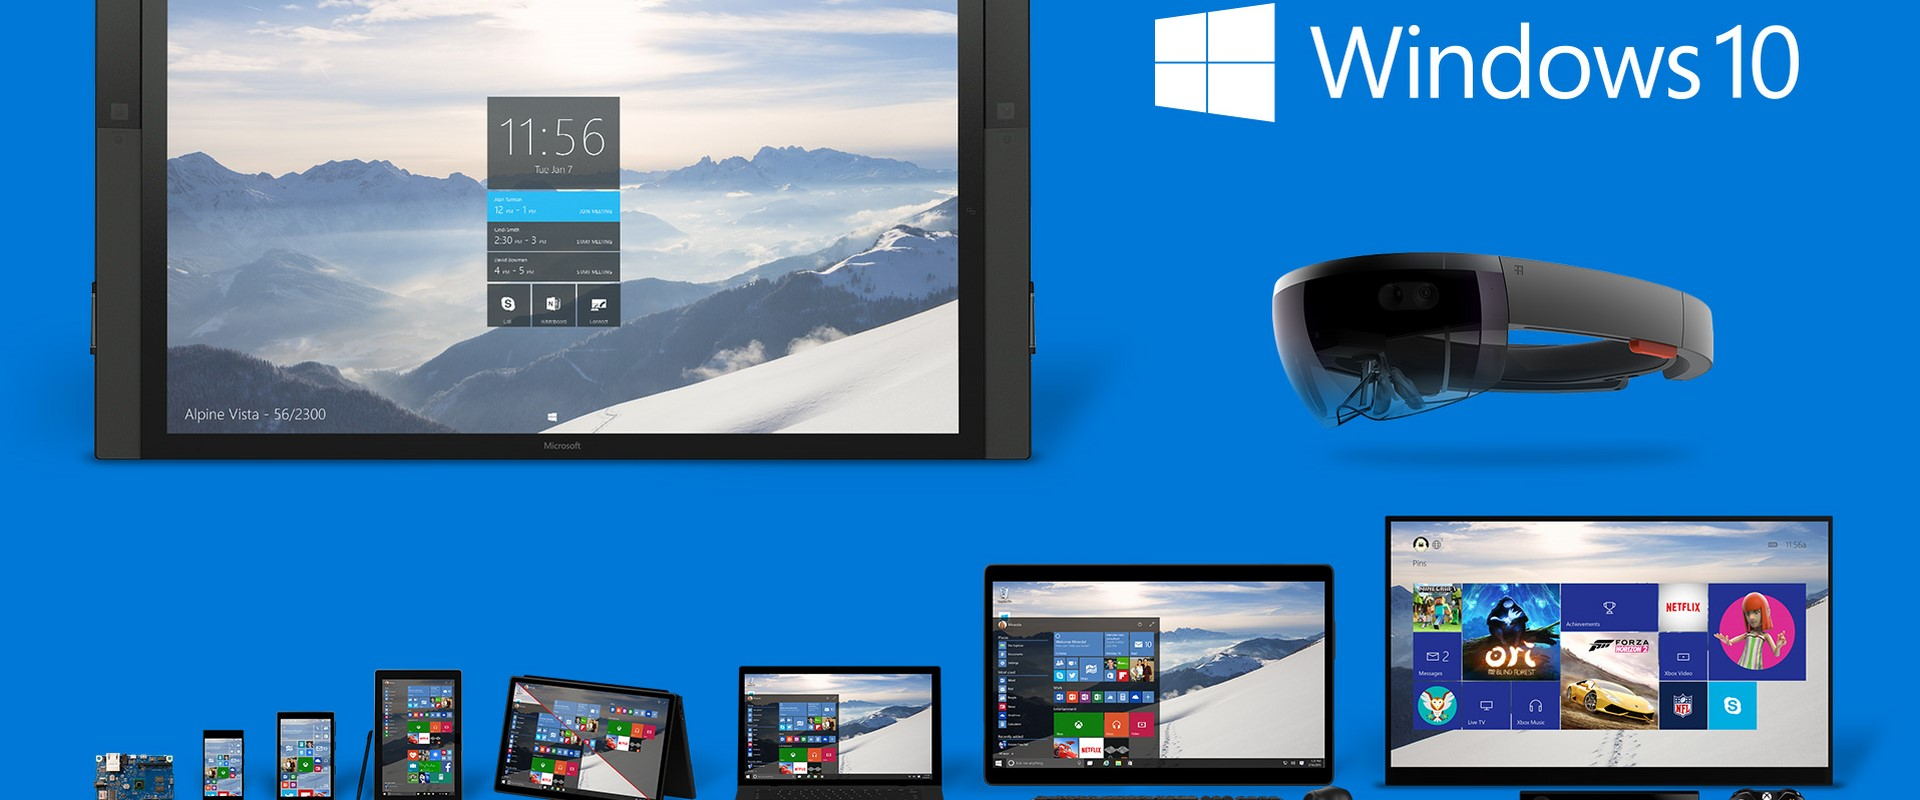 08040892-photo-windows-10-product-family.jpg